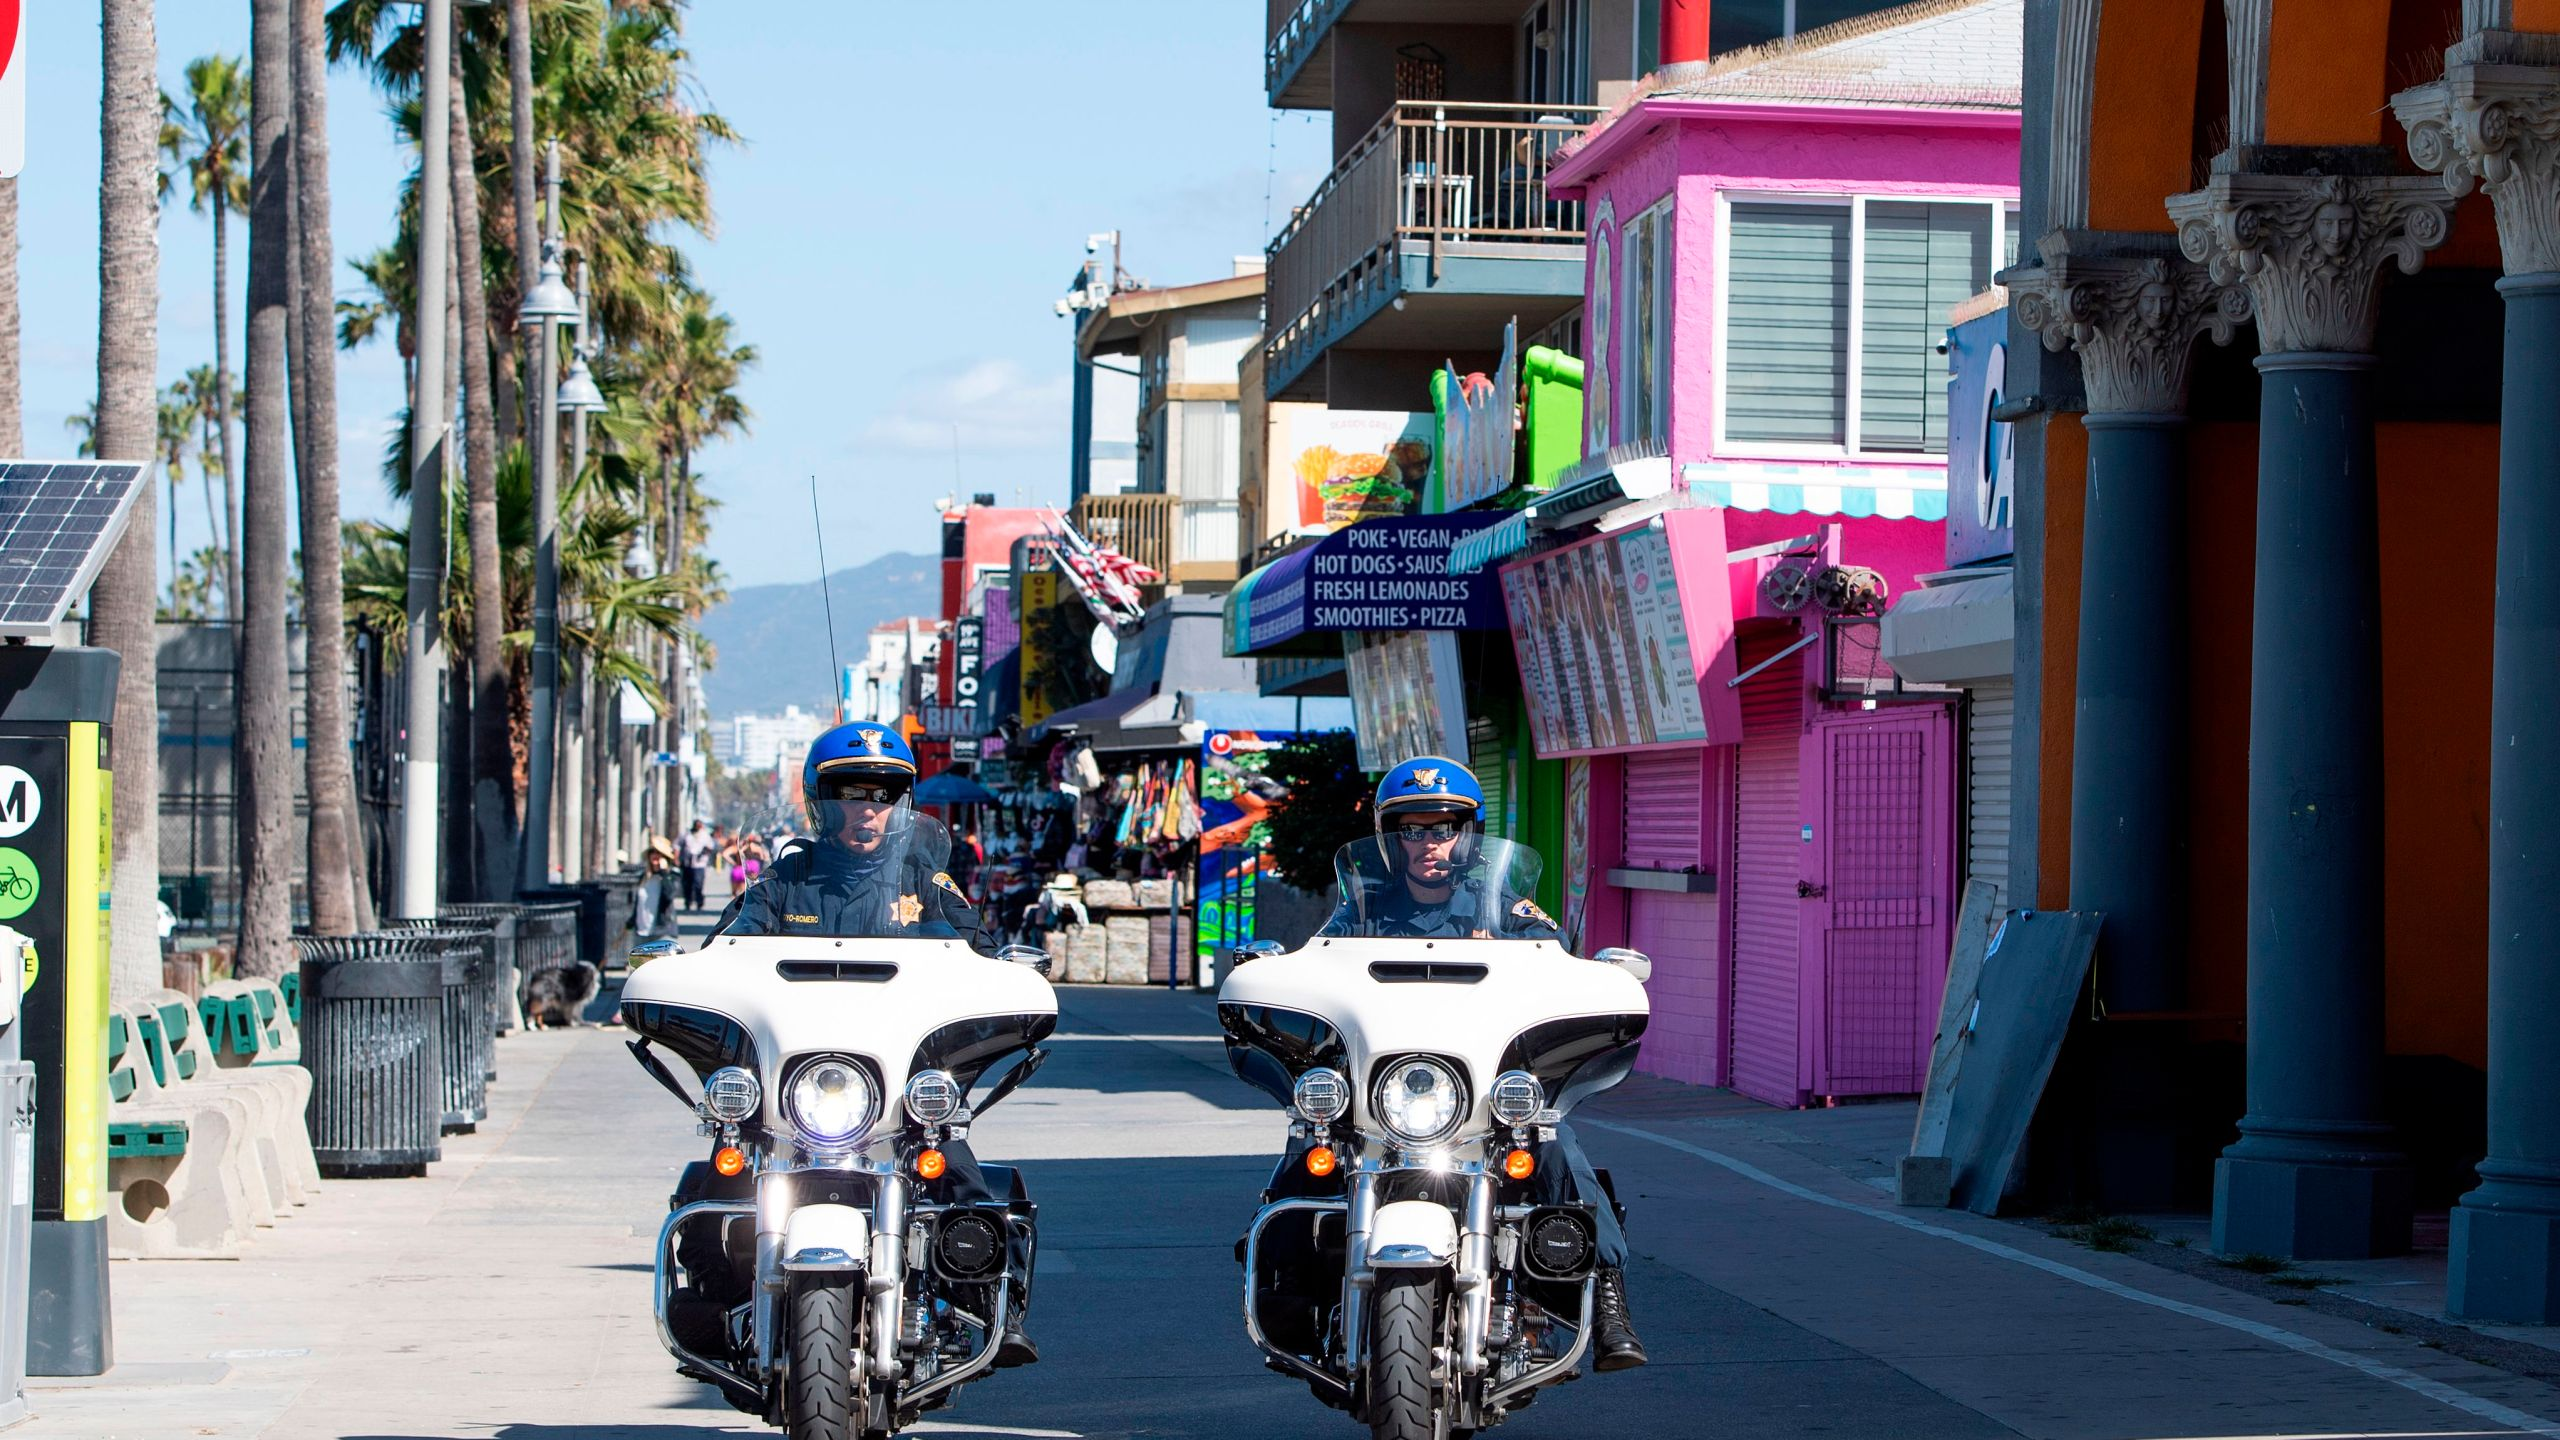 This file photo shows police officers patrolling the boardwalk in Venice Beach on May 13, 2020.(VALERIE MACON/AFP via Getty Images)